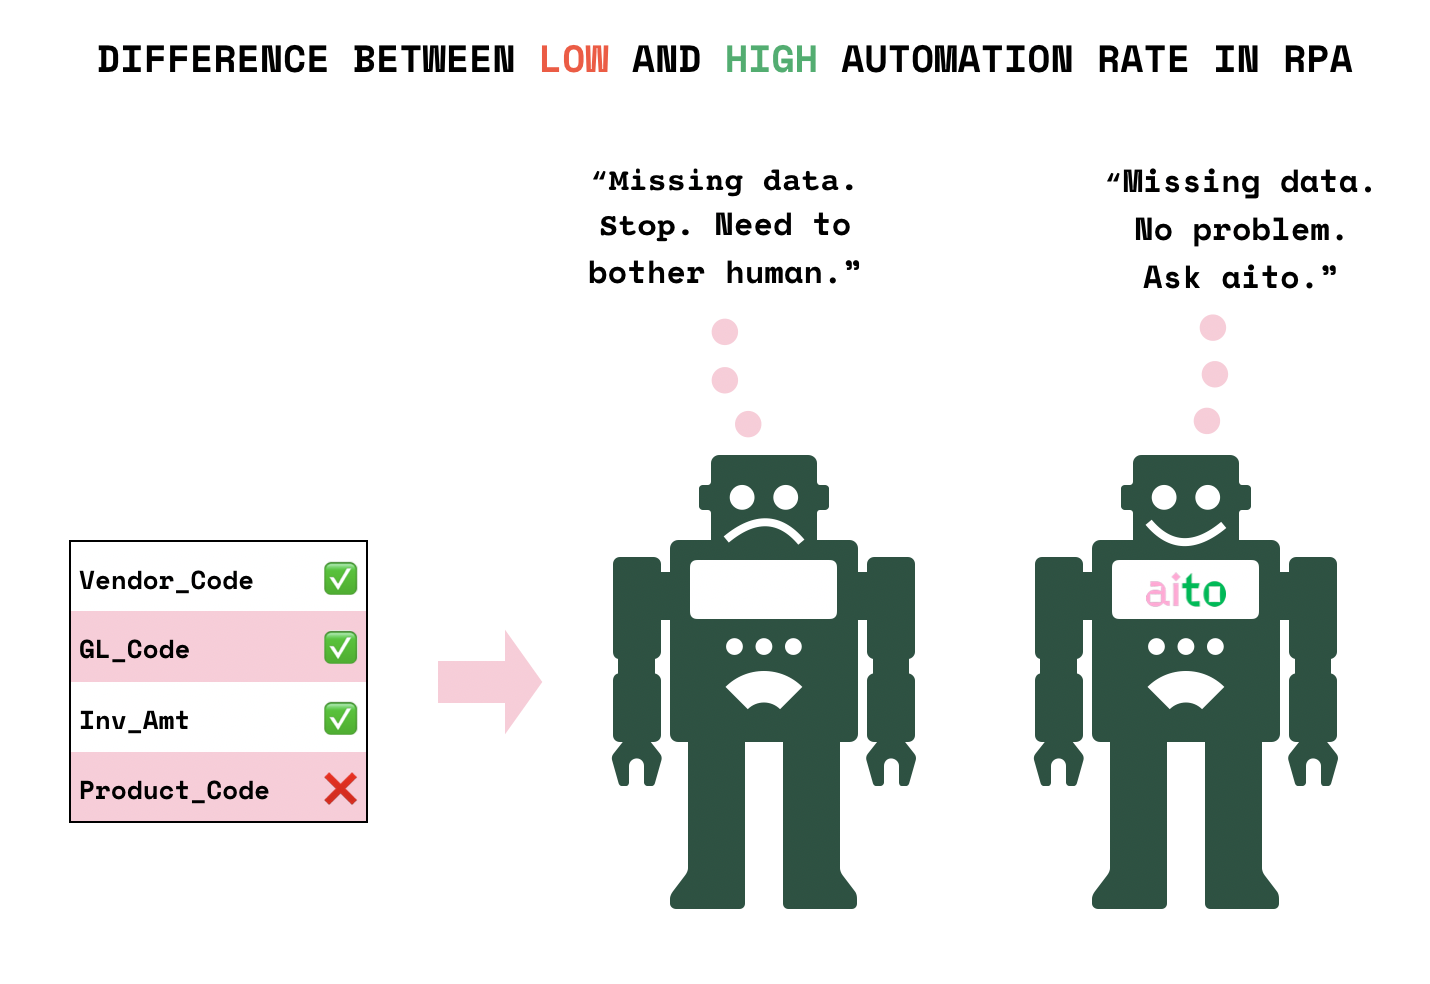 The difference between sad and happy RPA bot